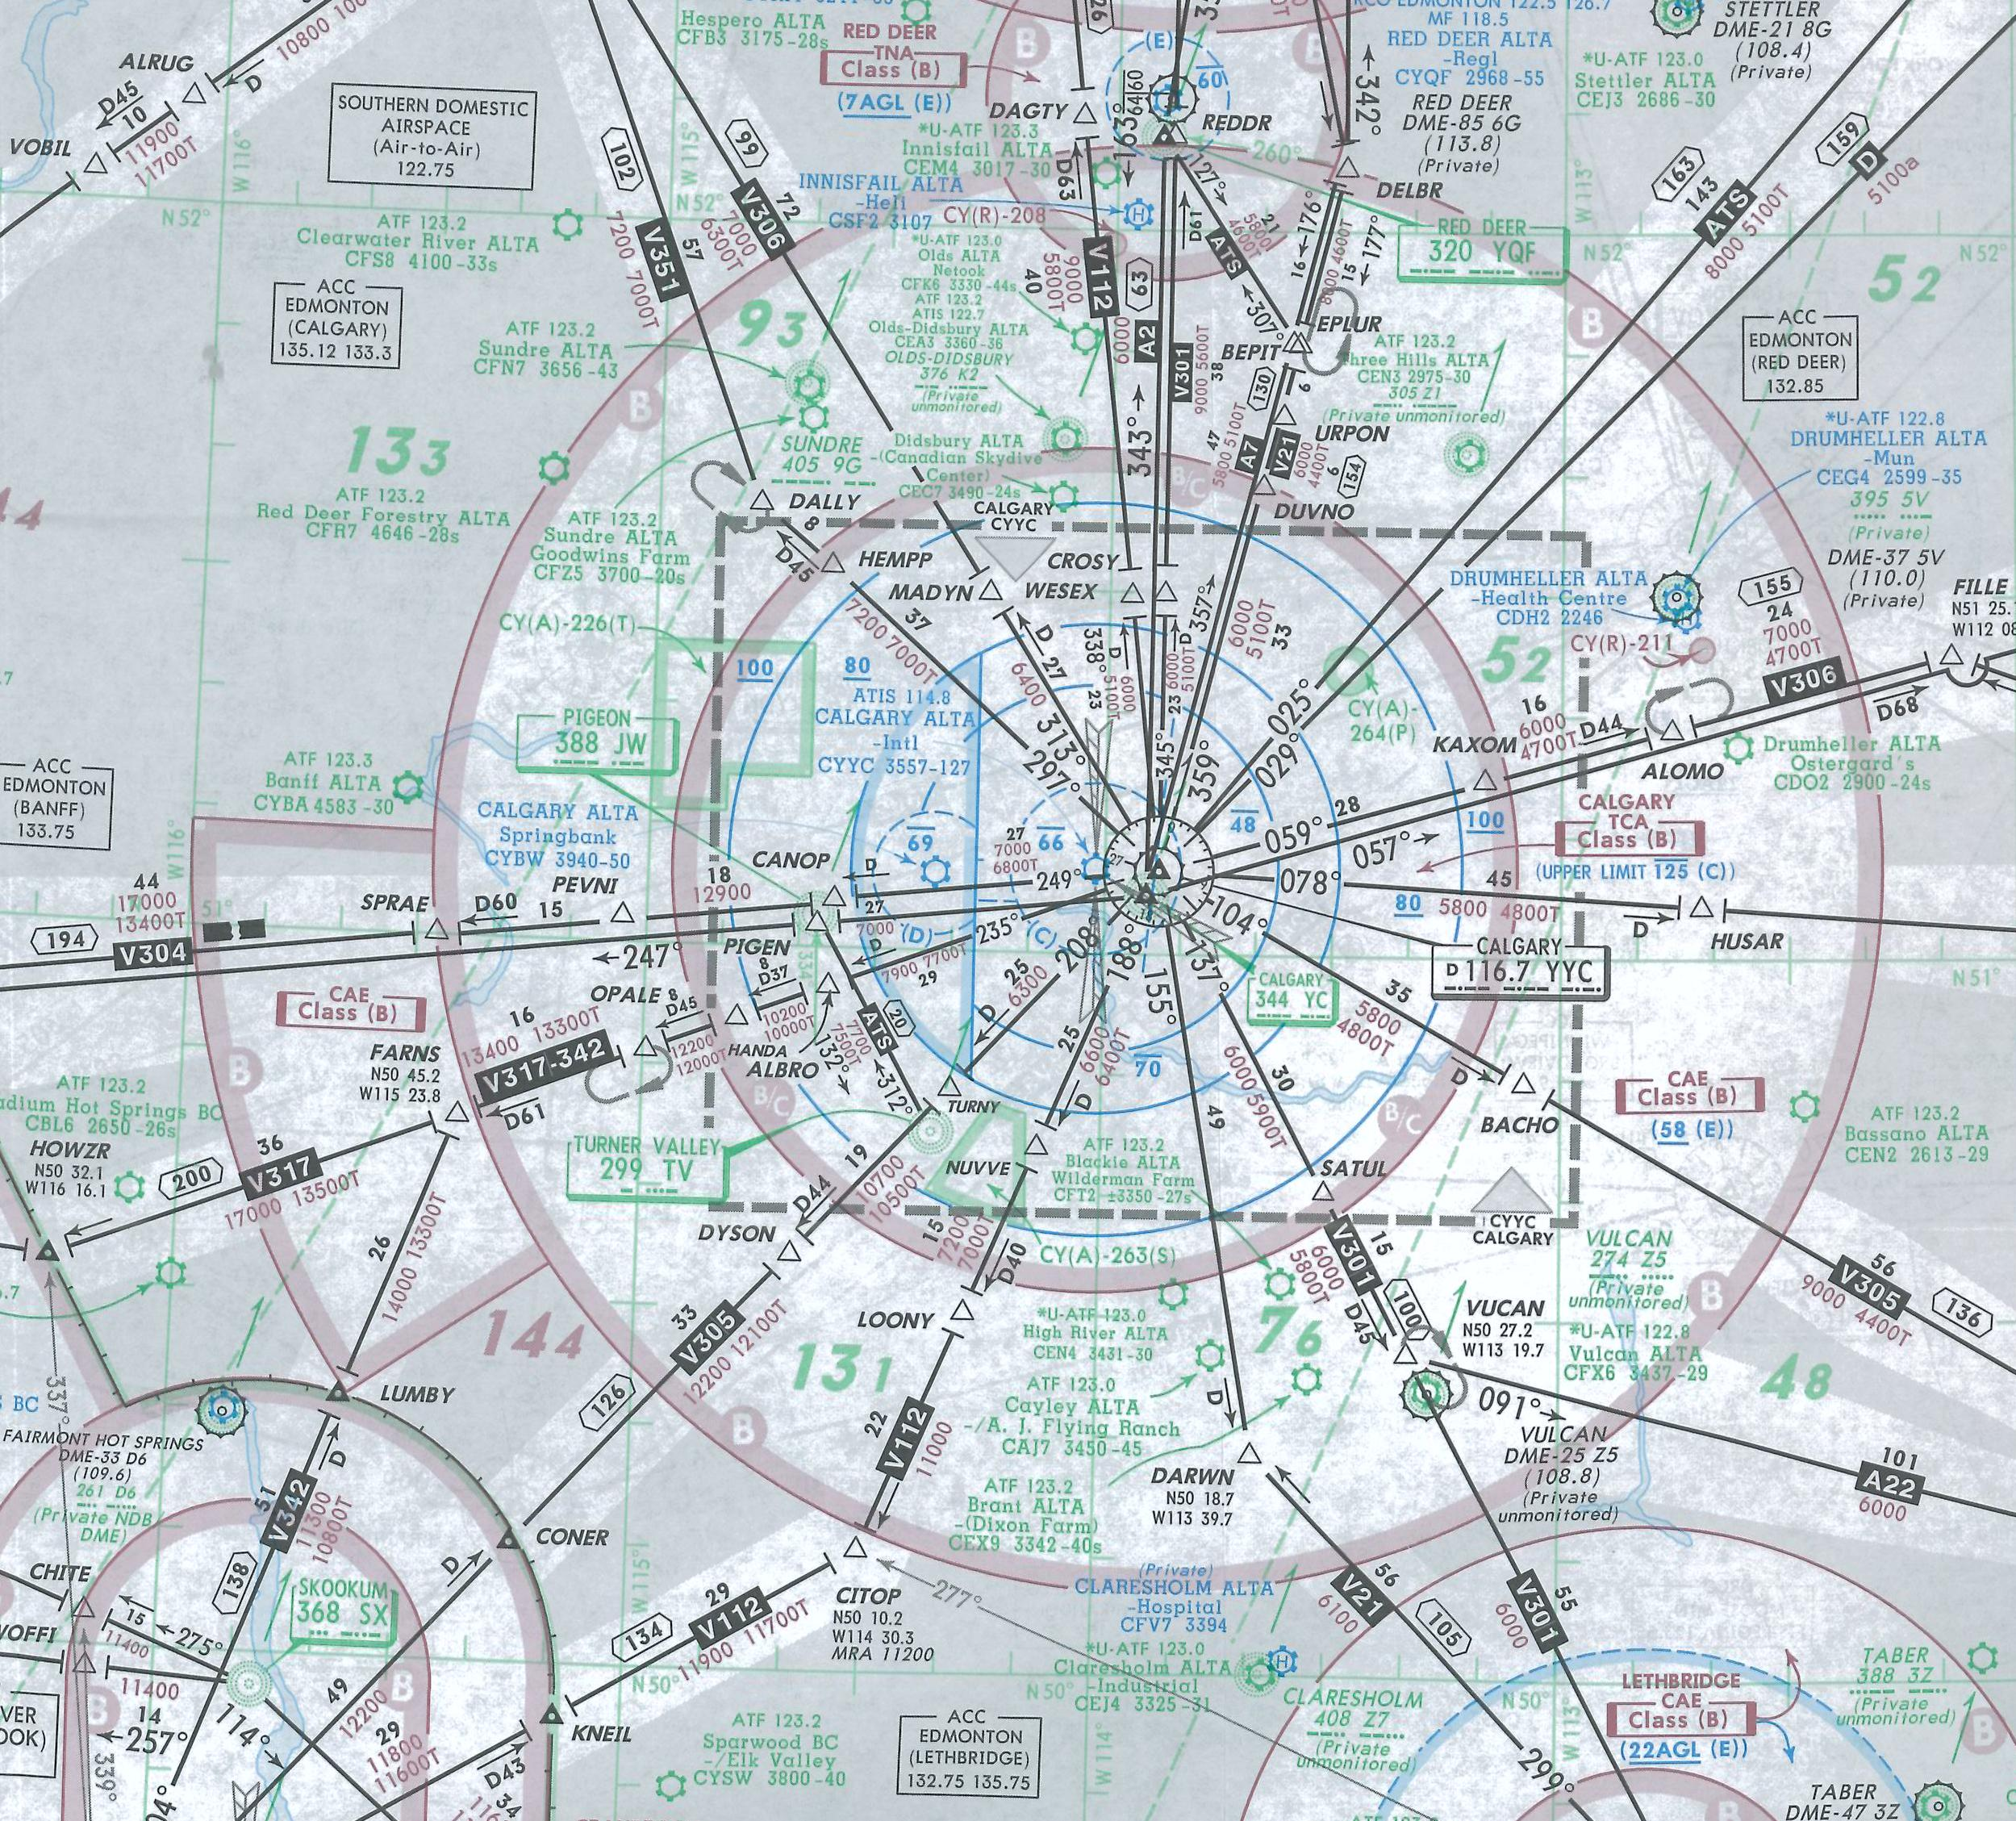 Langley Flying School Map Room, Calgary IFR